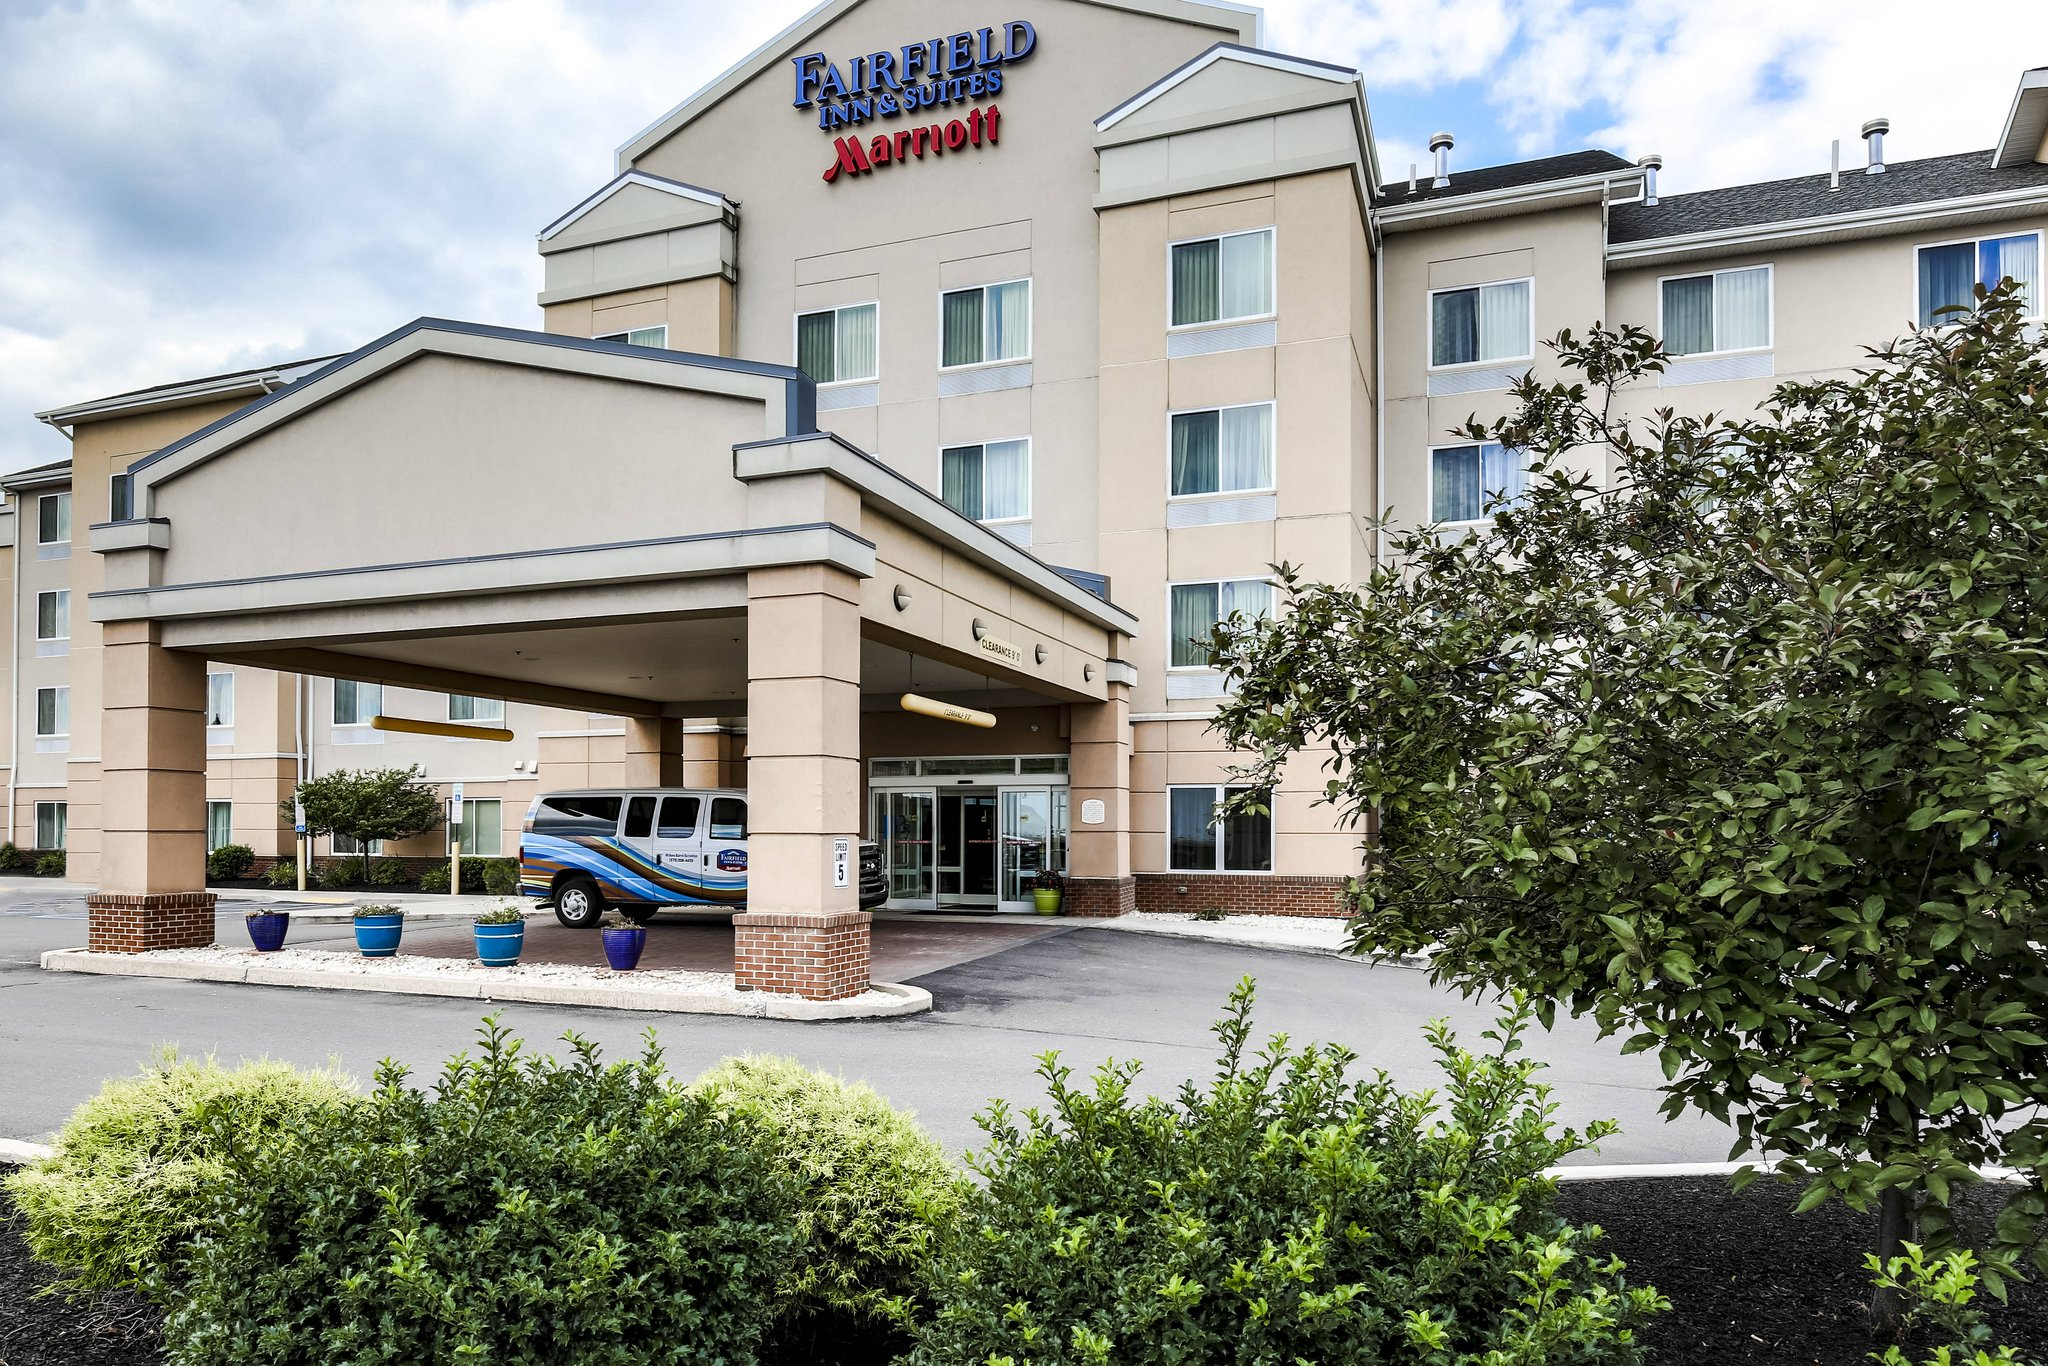 Fairfield Inn & Suites Wilkes-Barre